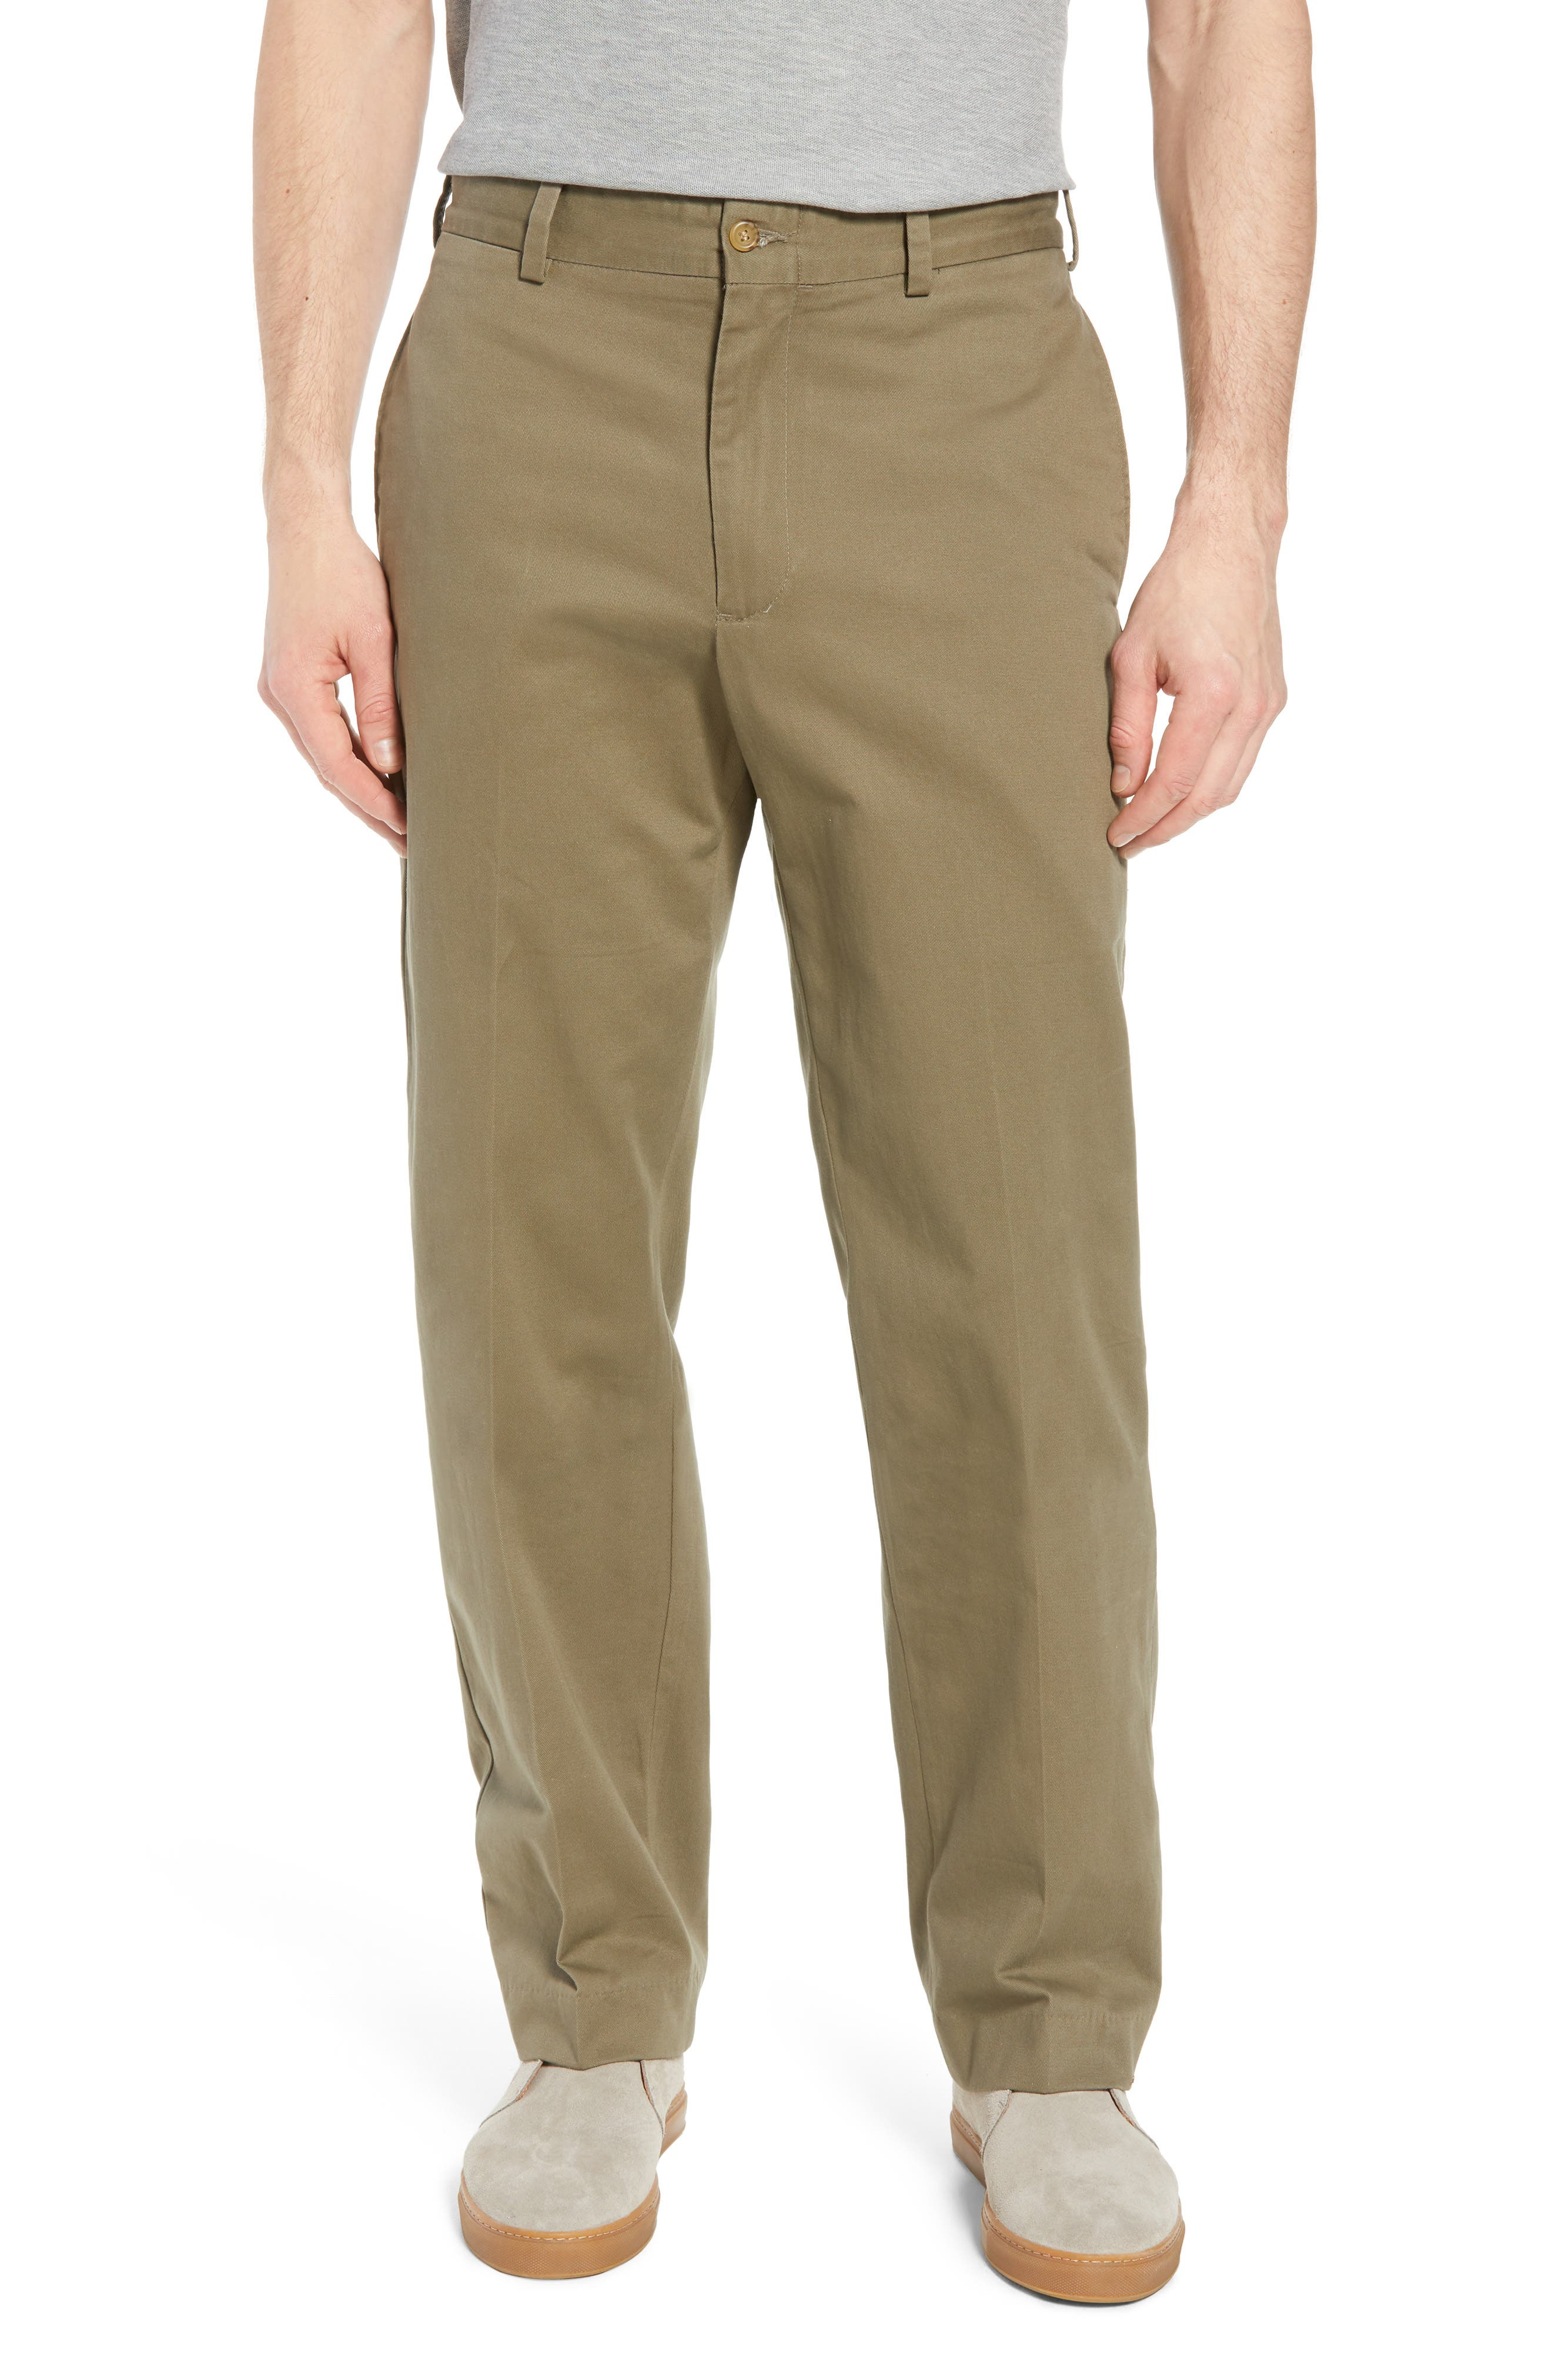 M2 Classic Fit Flat Front Vintage Twill Pants,                         Main,                         color, Olive